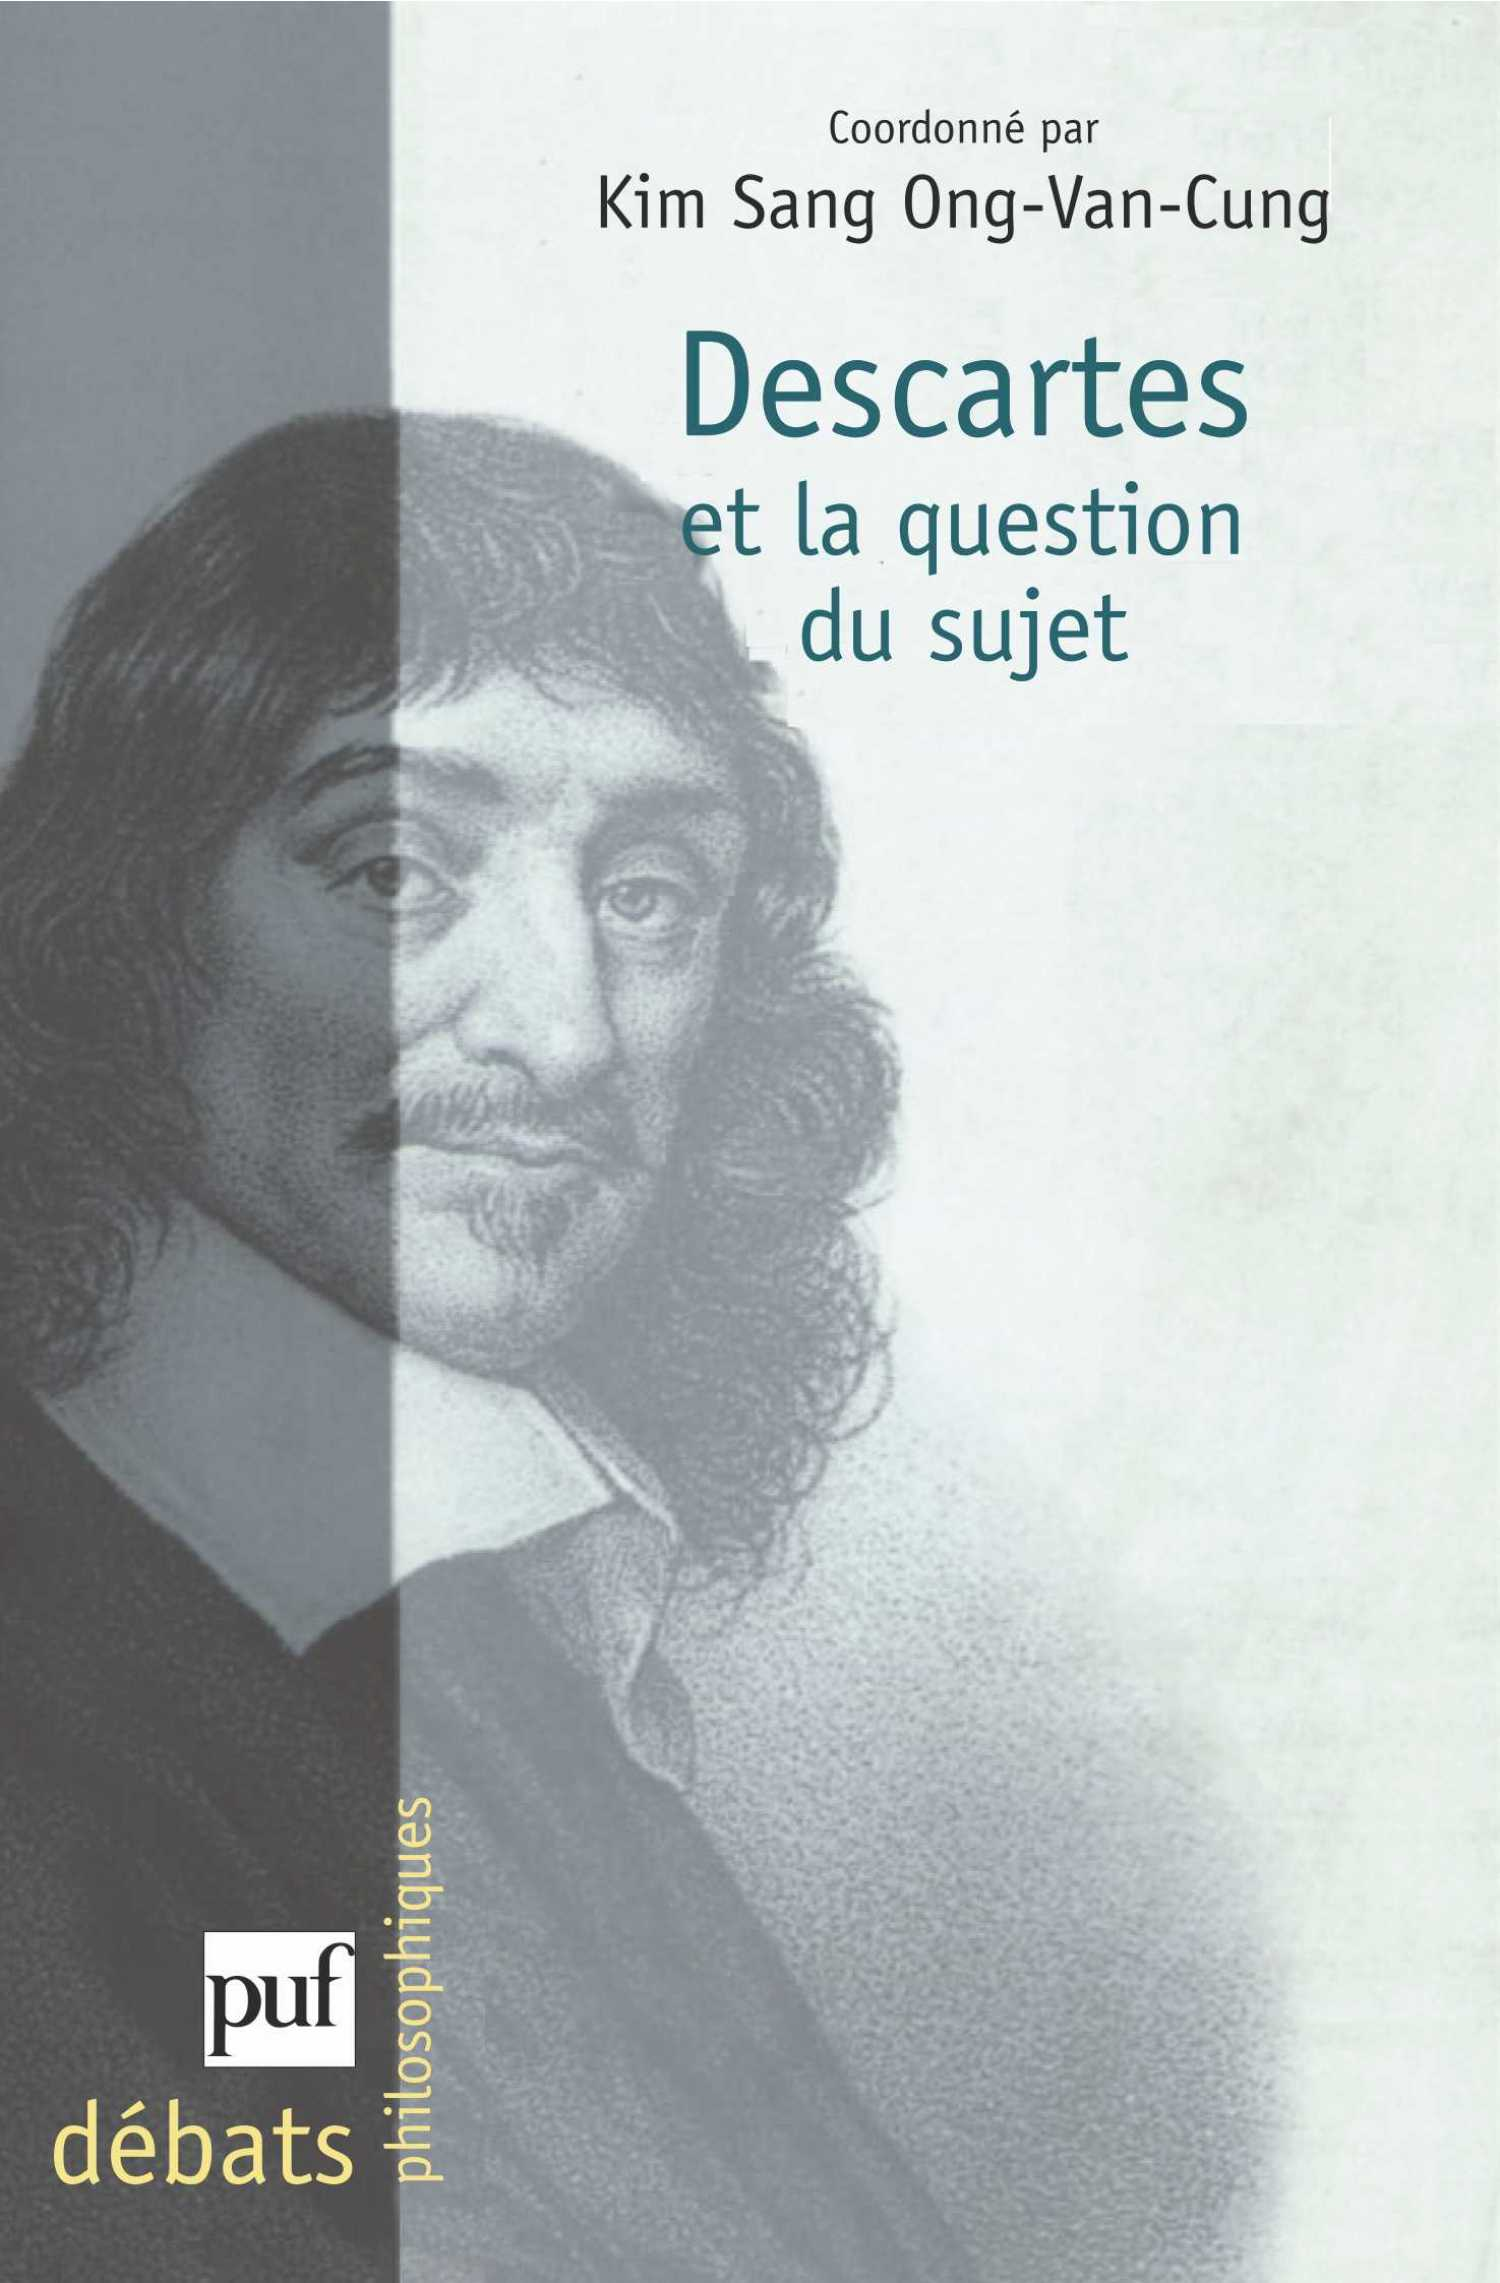 Descartes et la question du sujet De Kim Sang Ong-Van-Cung - Presses Universitaires de France